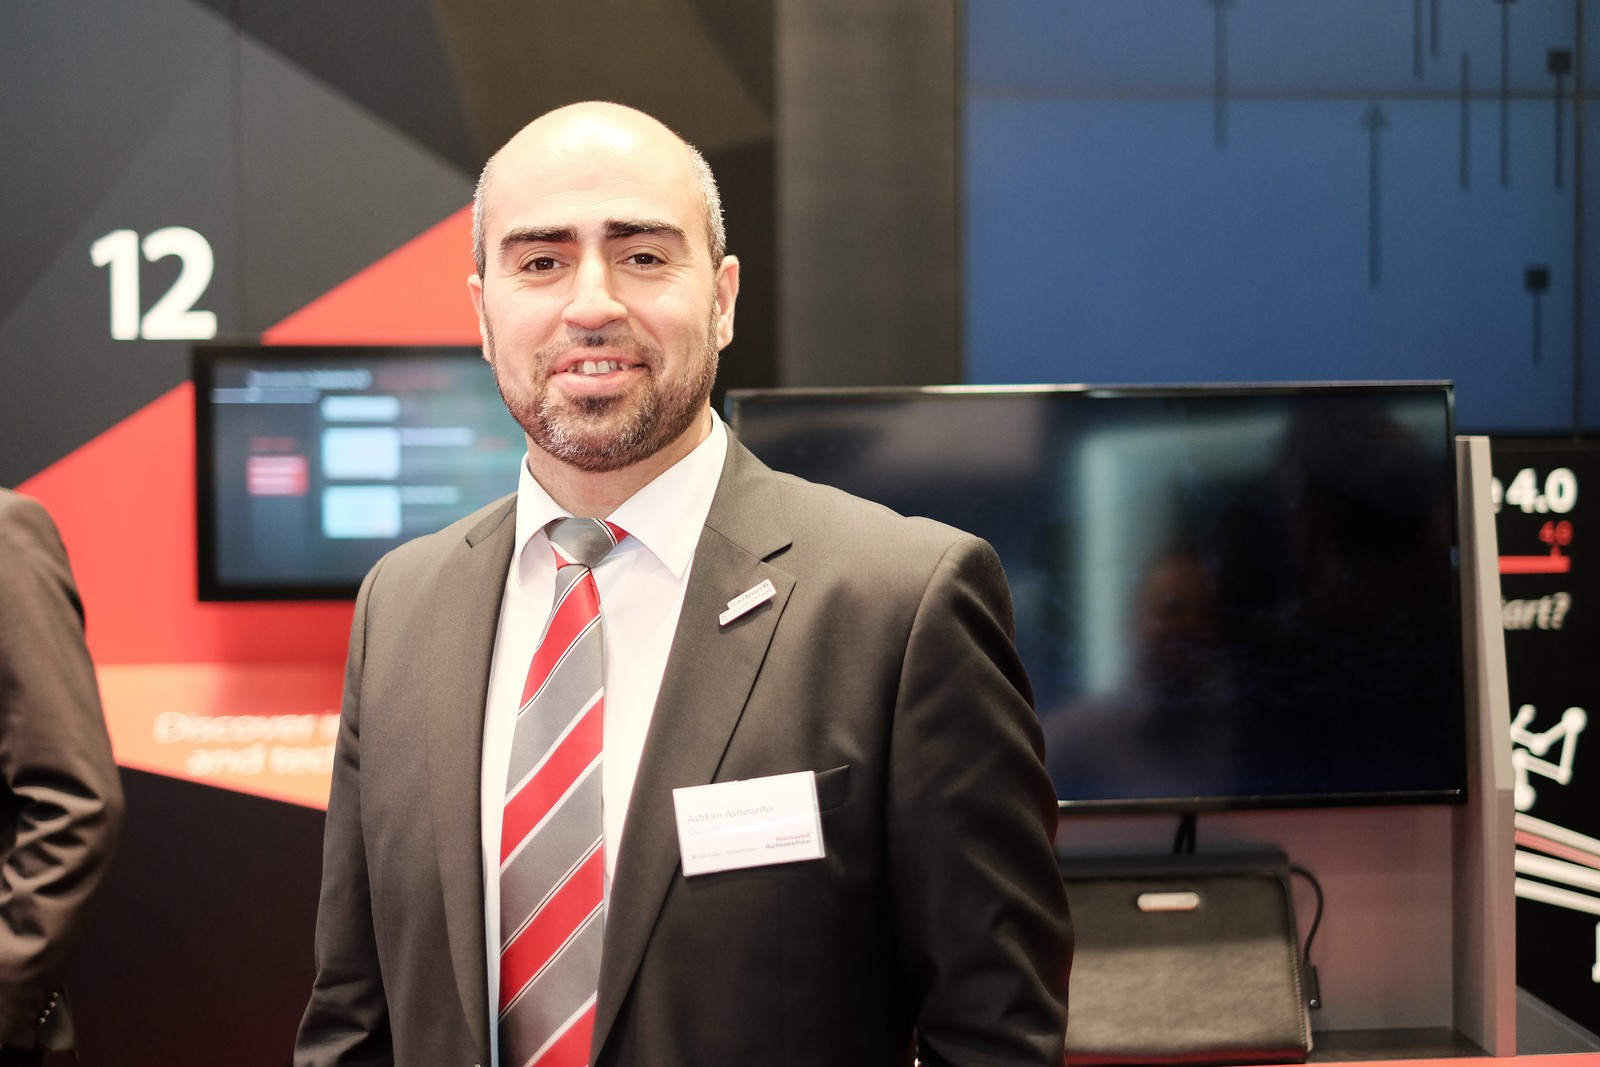 Ashkan Ashouriha, Solution Architect Integarted Architecture & Connected Enterprise bei Rockwell Automation.